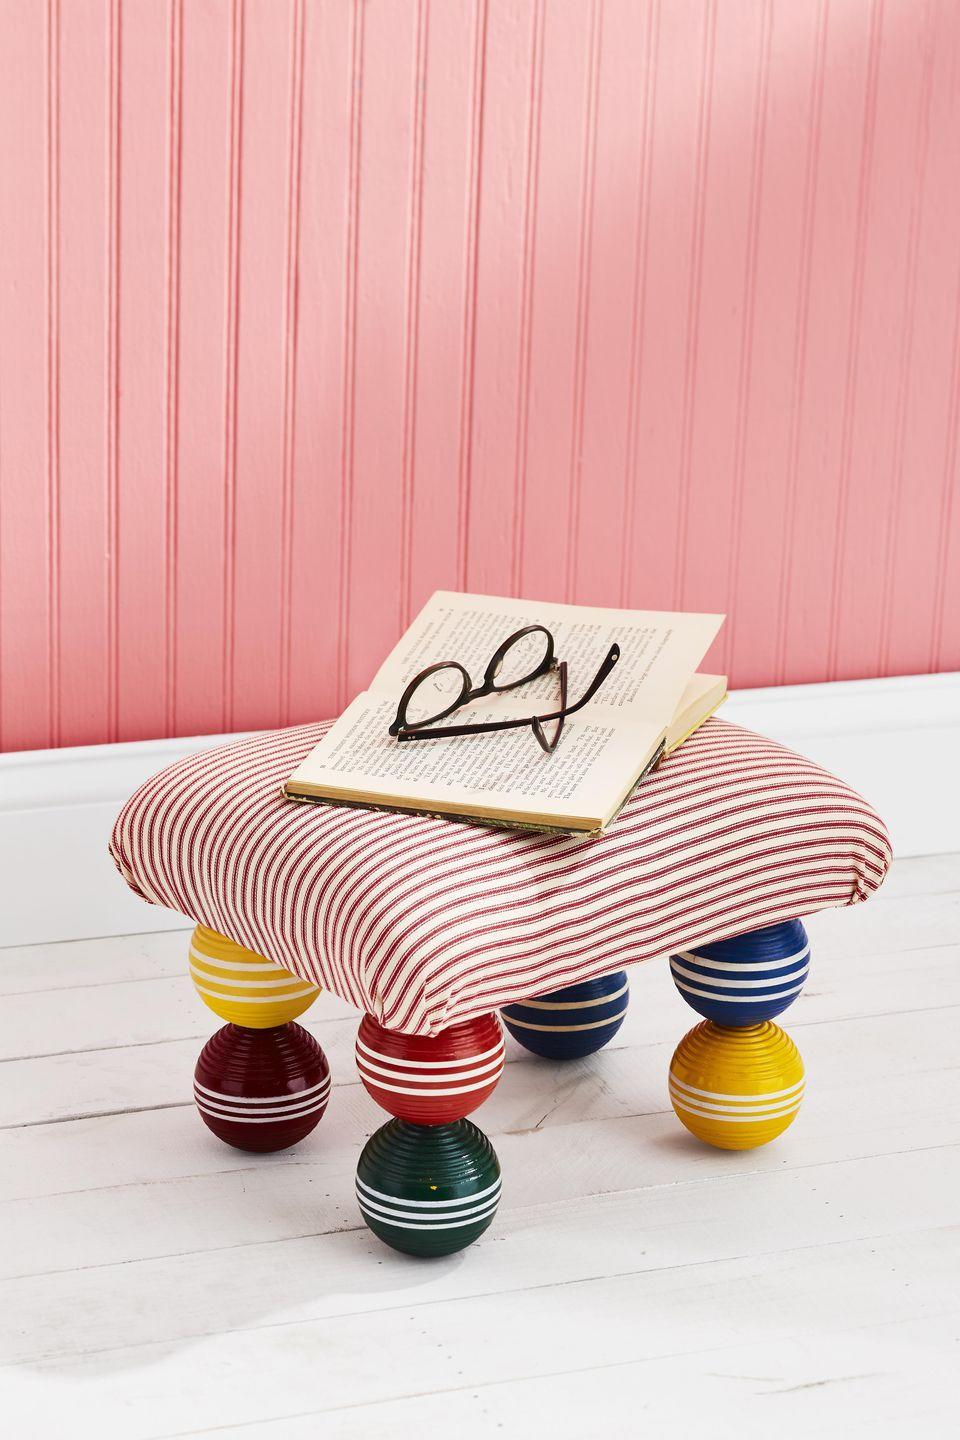 <p>Customize this sweet footstool by using all one color or maybe two croquet balls and covering the top with a fabric that matches your already existing color scheme.<strong><br></strong></p><p><strong>To make: </strong>Cut a piece of plywood into a 13 1/2-by-11-inch rectangle. Drill a 5/8-inch hole 2 inches deep in eight croquet balls. Glue one ball, hole side down, 2 1/4 inches from each corner of plywood. Cut a 5/8-inch dowel into 4 four-inch-long pieces. Glue one length in each unused ball. Thread dowels into balls attached to board, gluing in place. Cover wood with batting and fabric. Secure in place with a staple gun.</p>